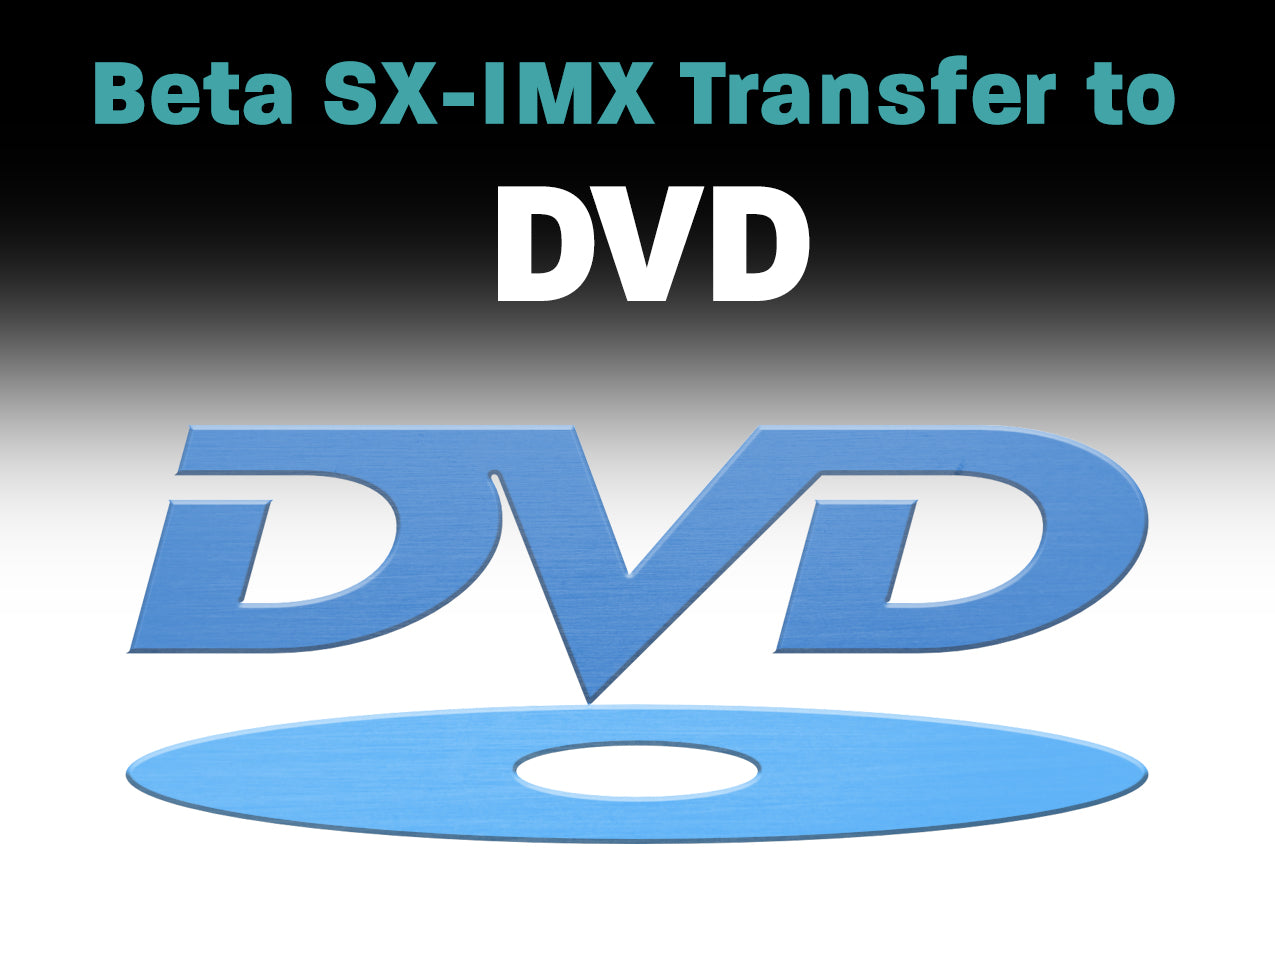 Betacam SX, IMX to DVD